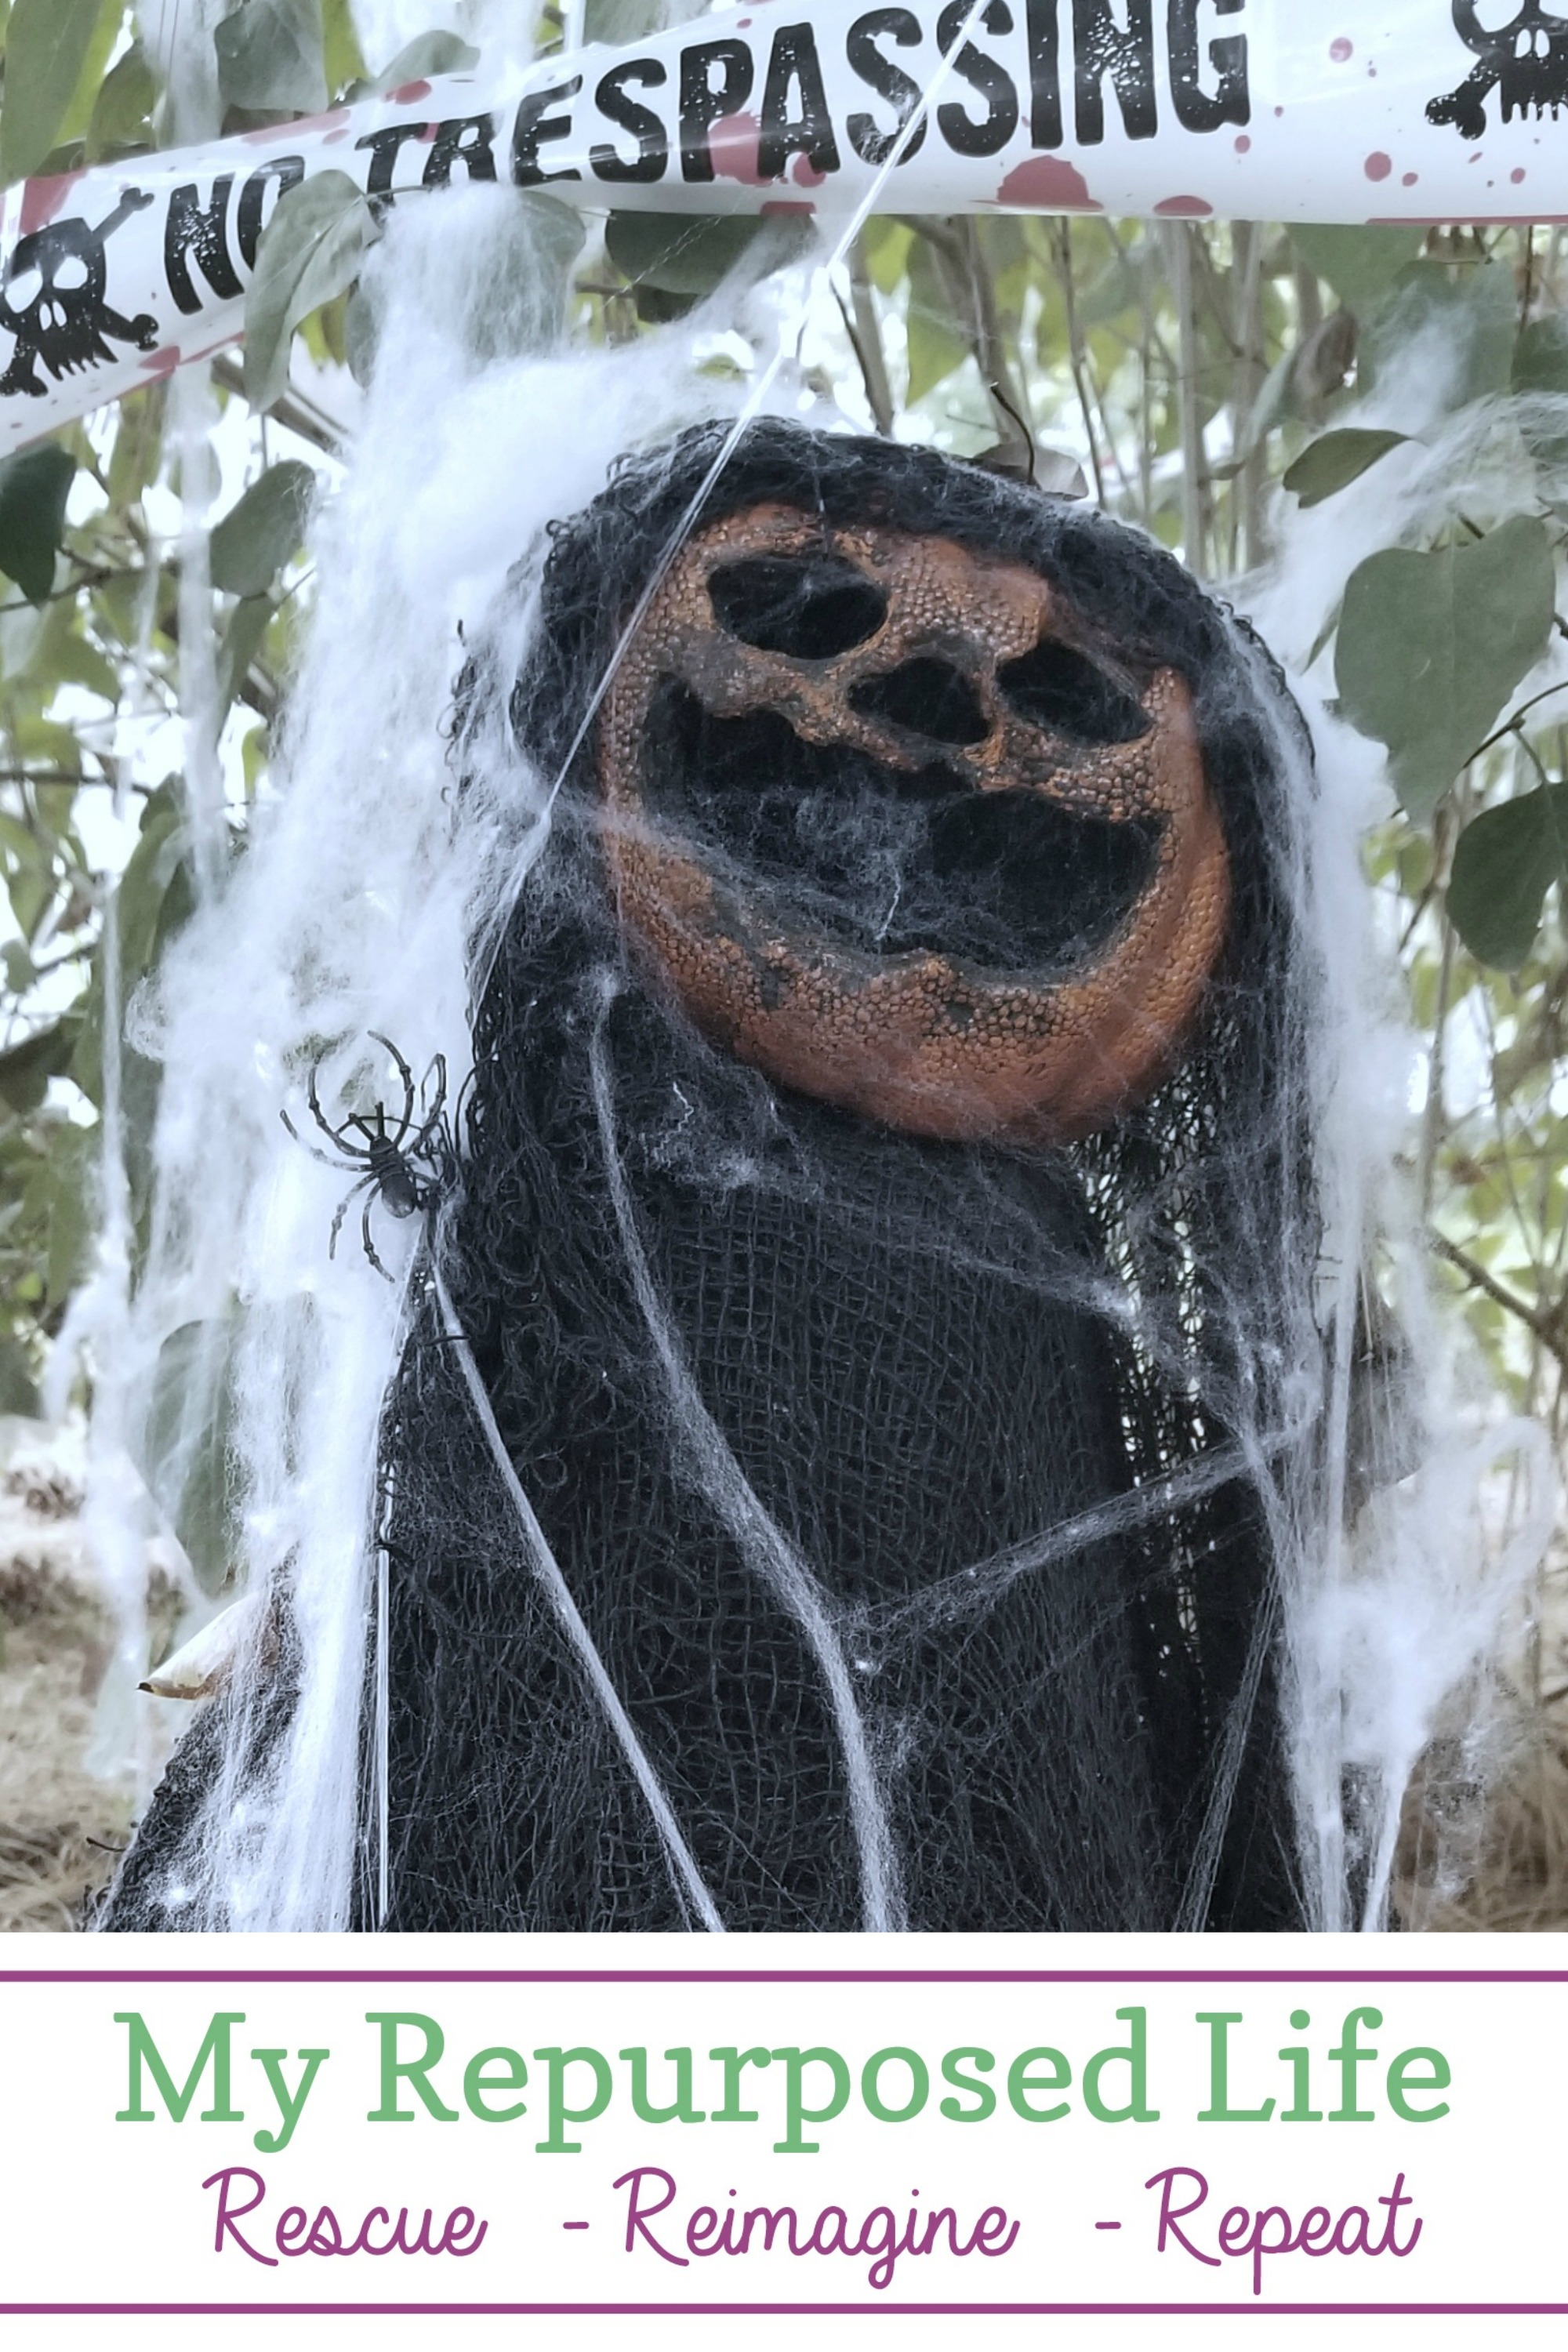 Creepy scary pumpkin head! Easy project to make with dollar store finds and a heat gun! For just a few dollars, you'll have a one of a kind halloween decor for your porch or yard. Detailed instructions included. #myrepurposedlife #halloween #spooky #decor #dollartree #diy via @repurposedlife